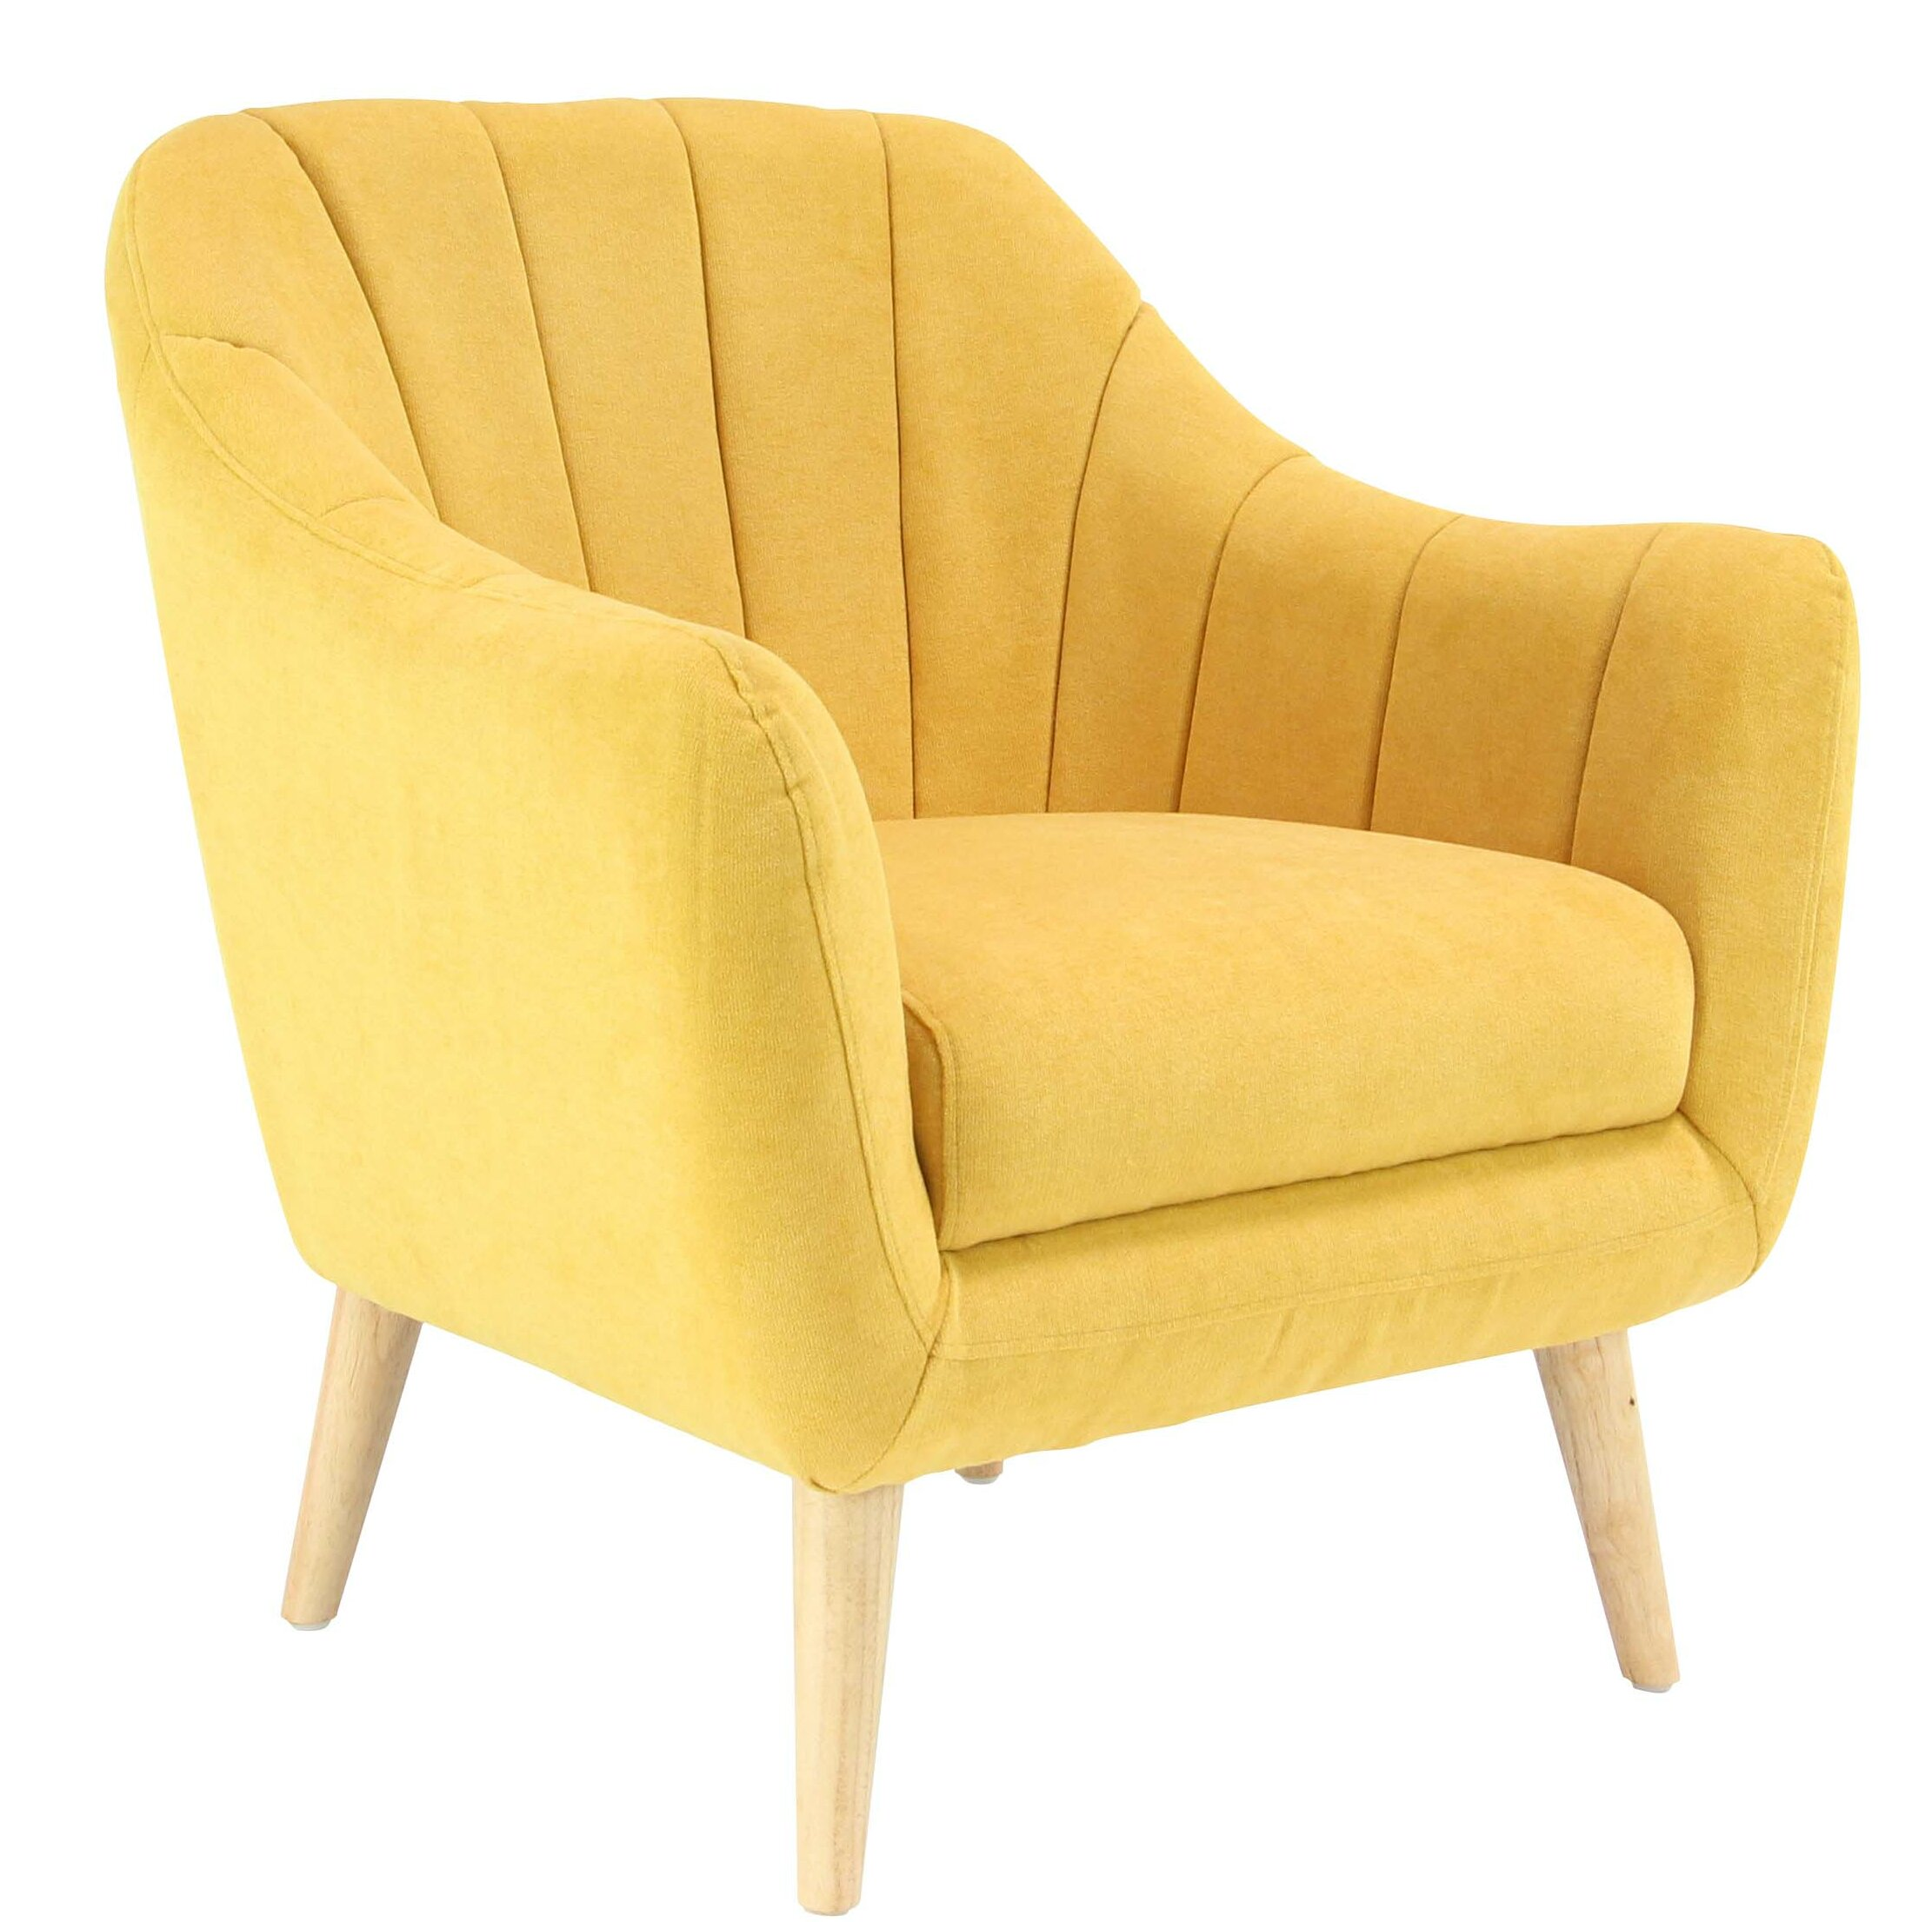 Delicieux George Oliver Veasley Modern Cushioned Armchair | Wayfair